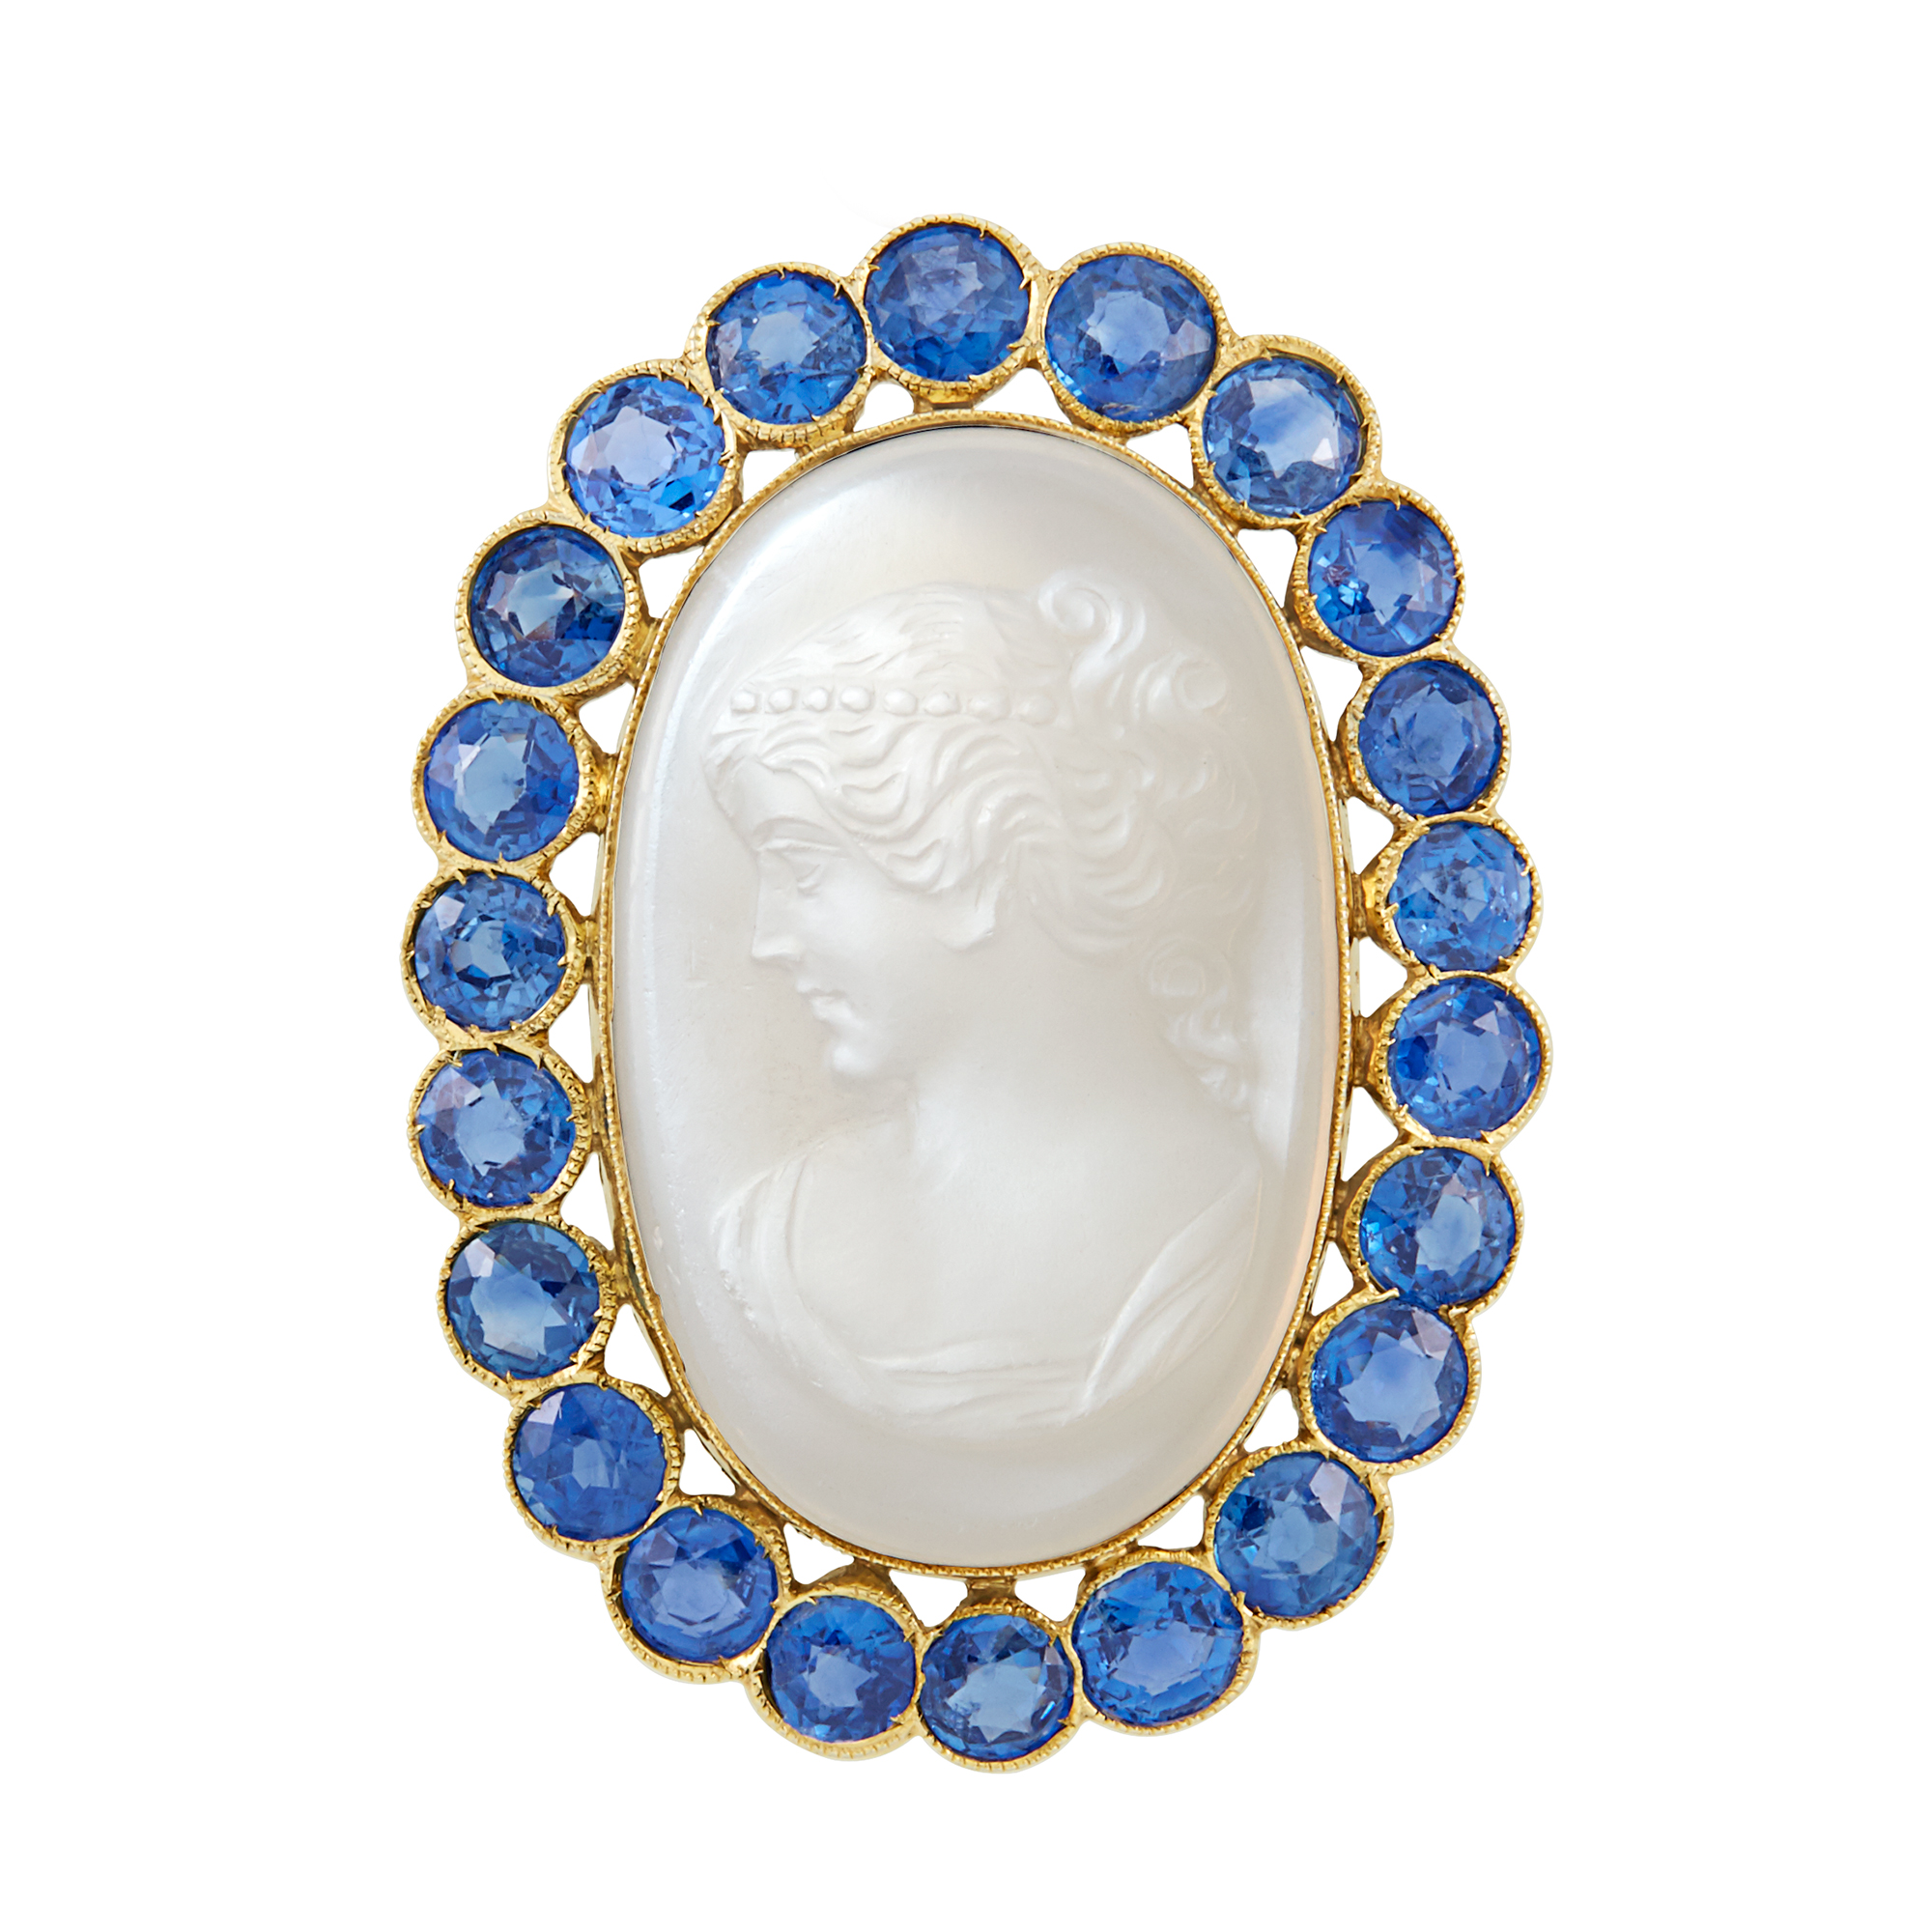 Lot image - Gold, Carved Moonstone and Sapphire Brooch